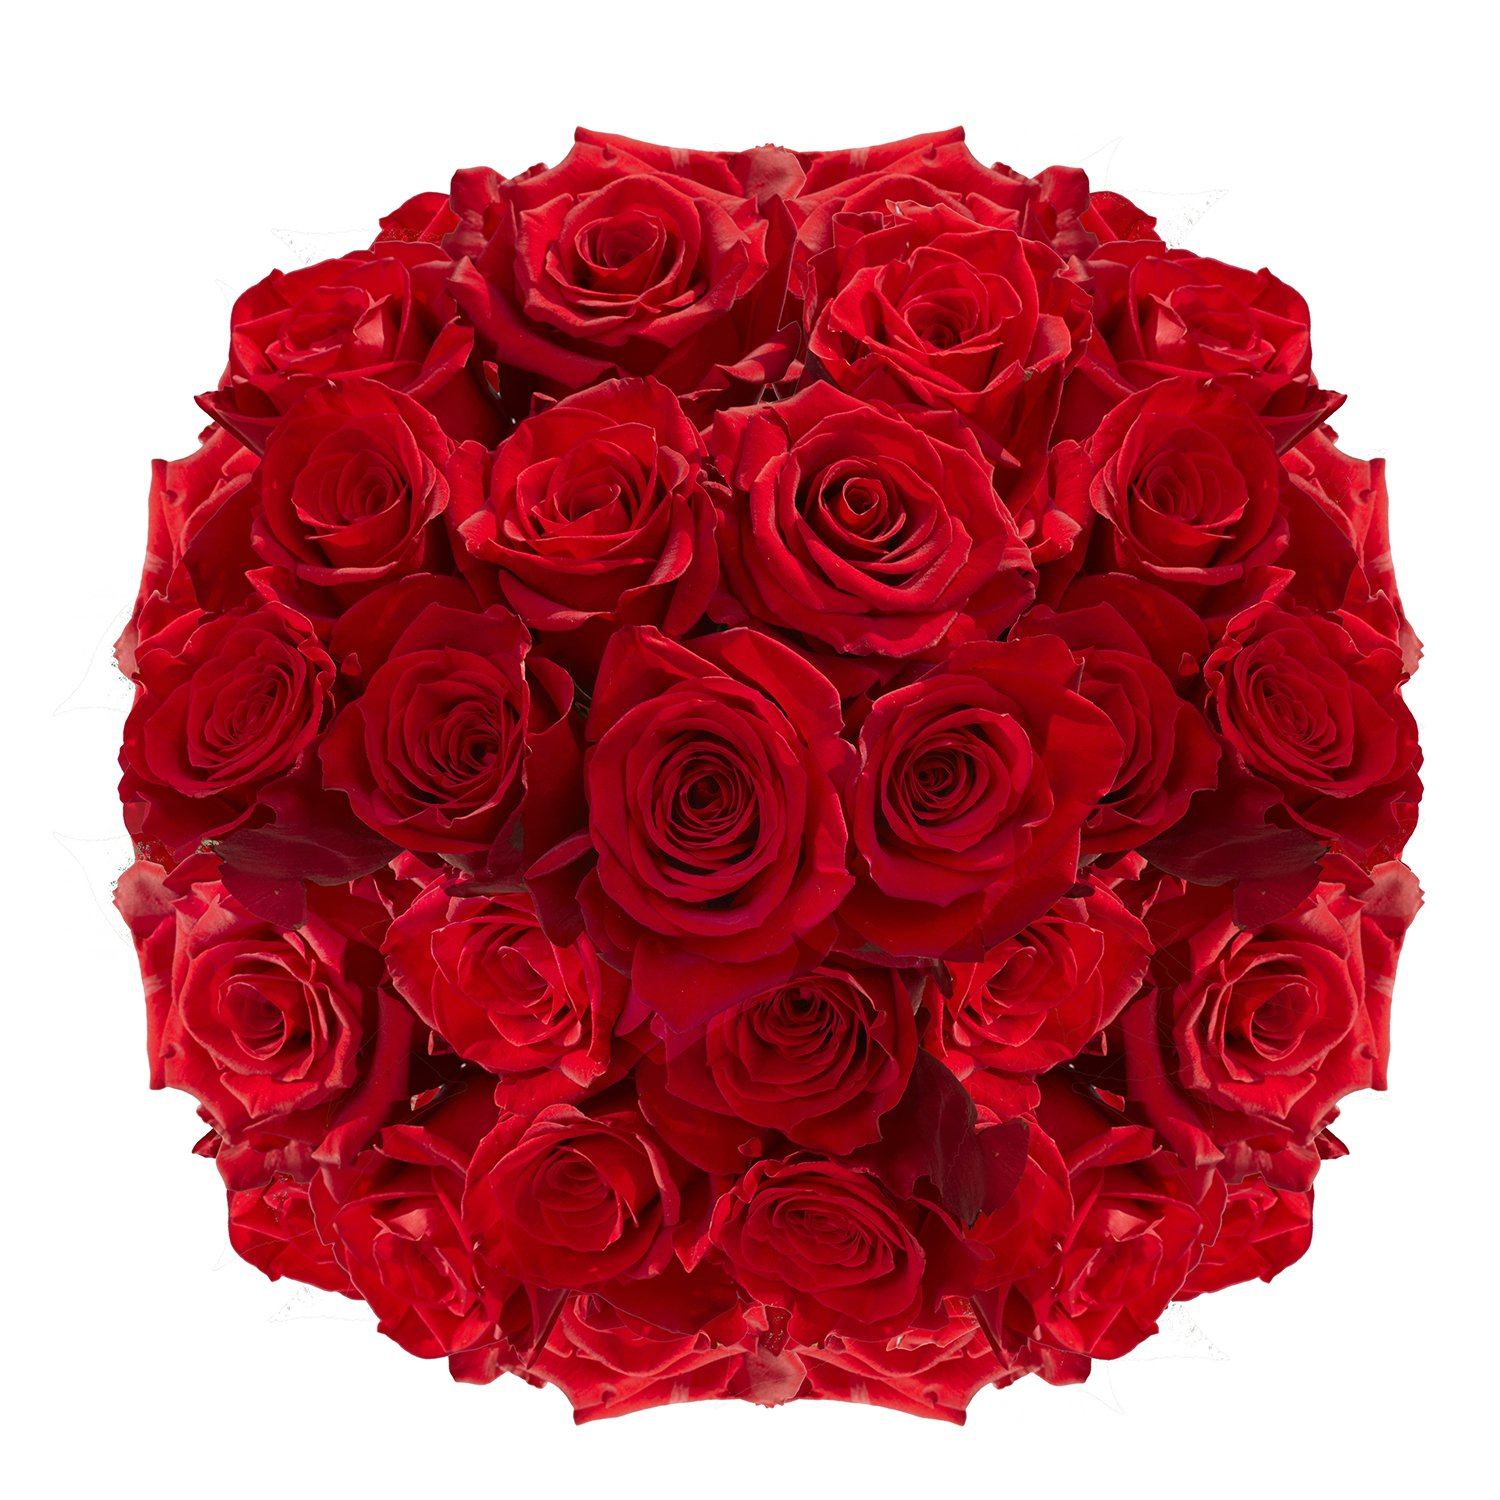 GlobalRose 100 Red Roses- Vibrant and Bright Red Blooms- Fresh Flowers Express Delivery) by GlobalRose (Image #3)